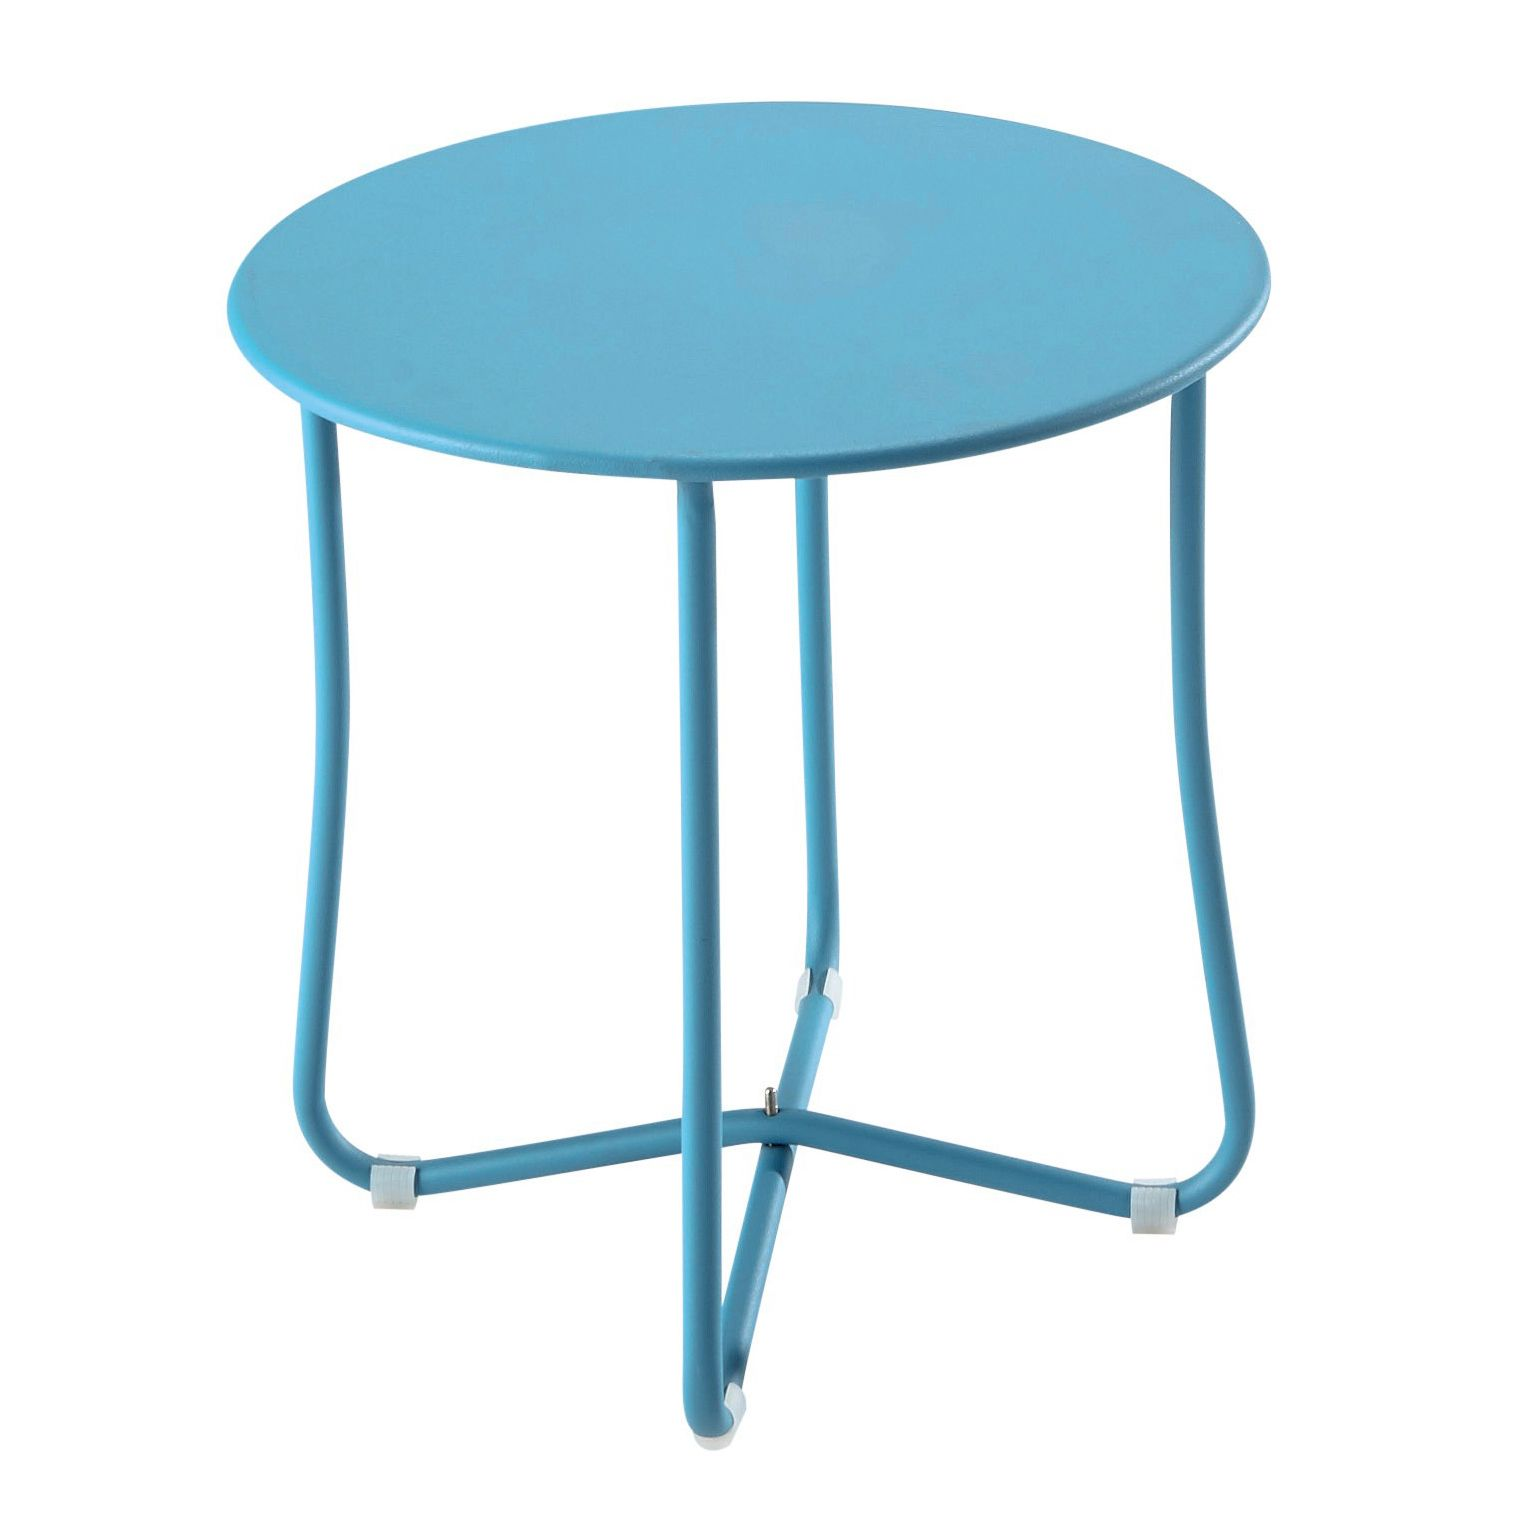 82a81444047b05fd491a000805d2ebf9 Incroyable De Table Jardin Ronde